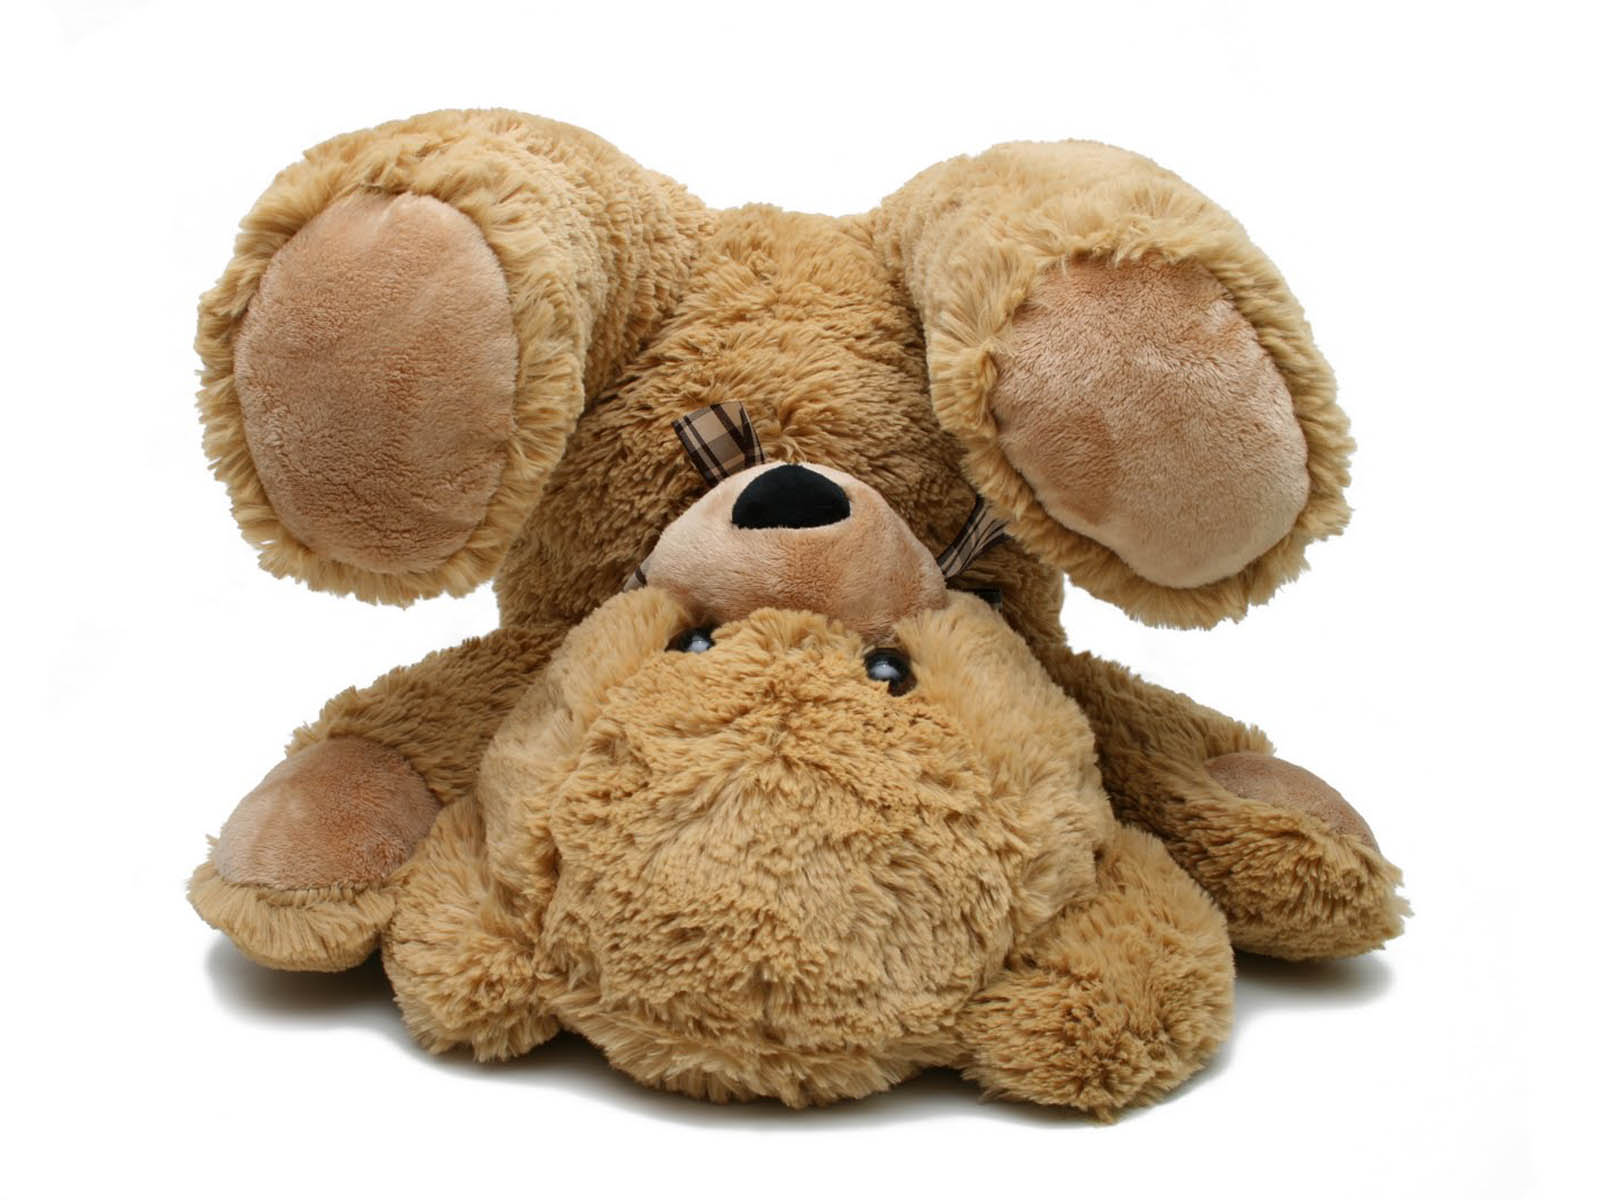 HD Wallpapers: Funny Teddy Bear Wallpapers